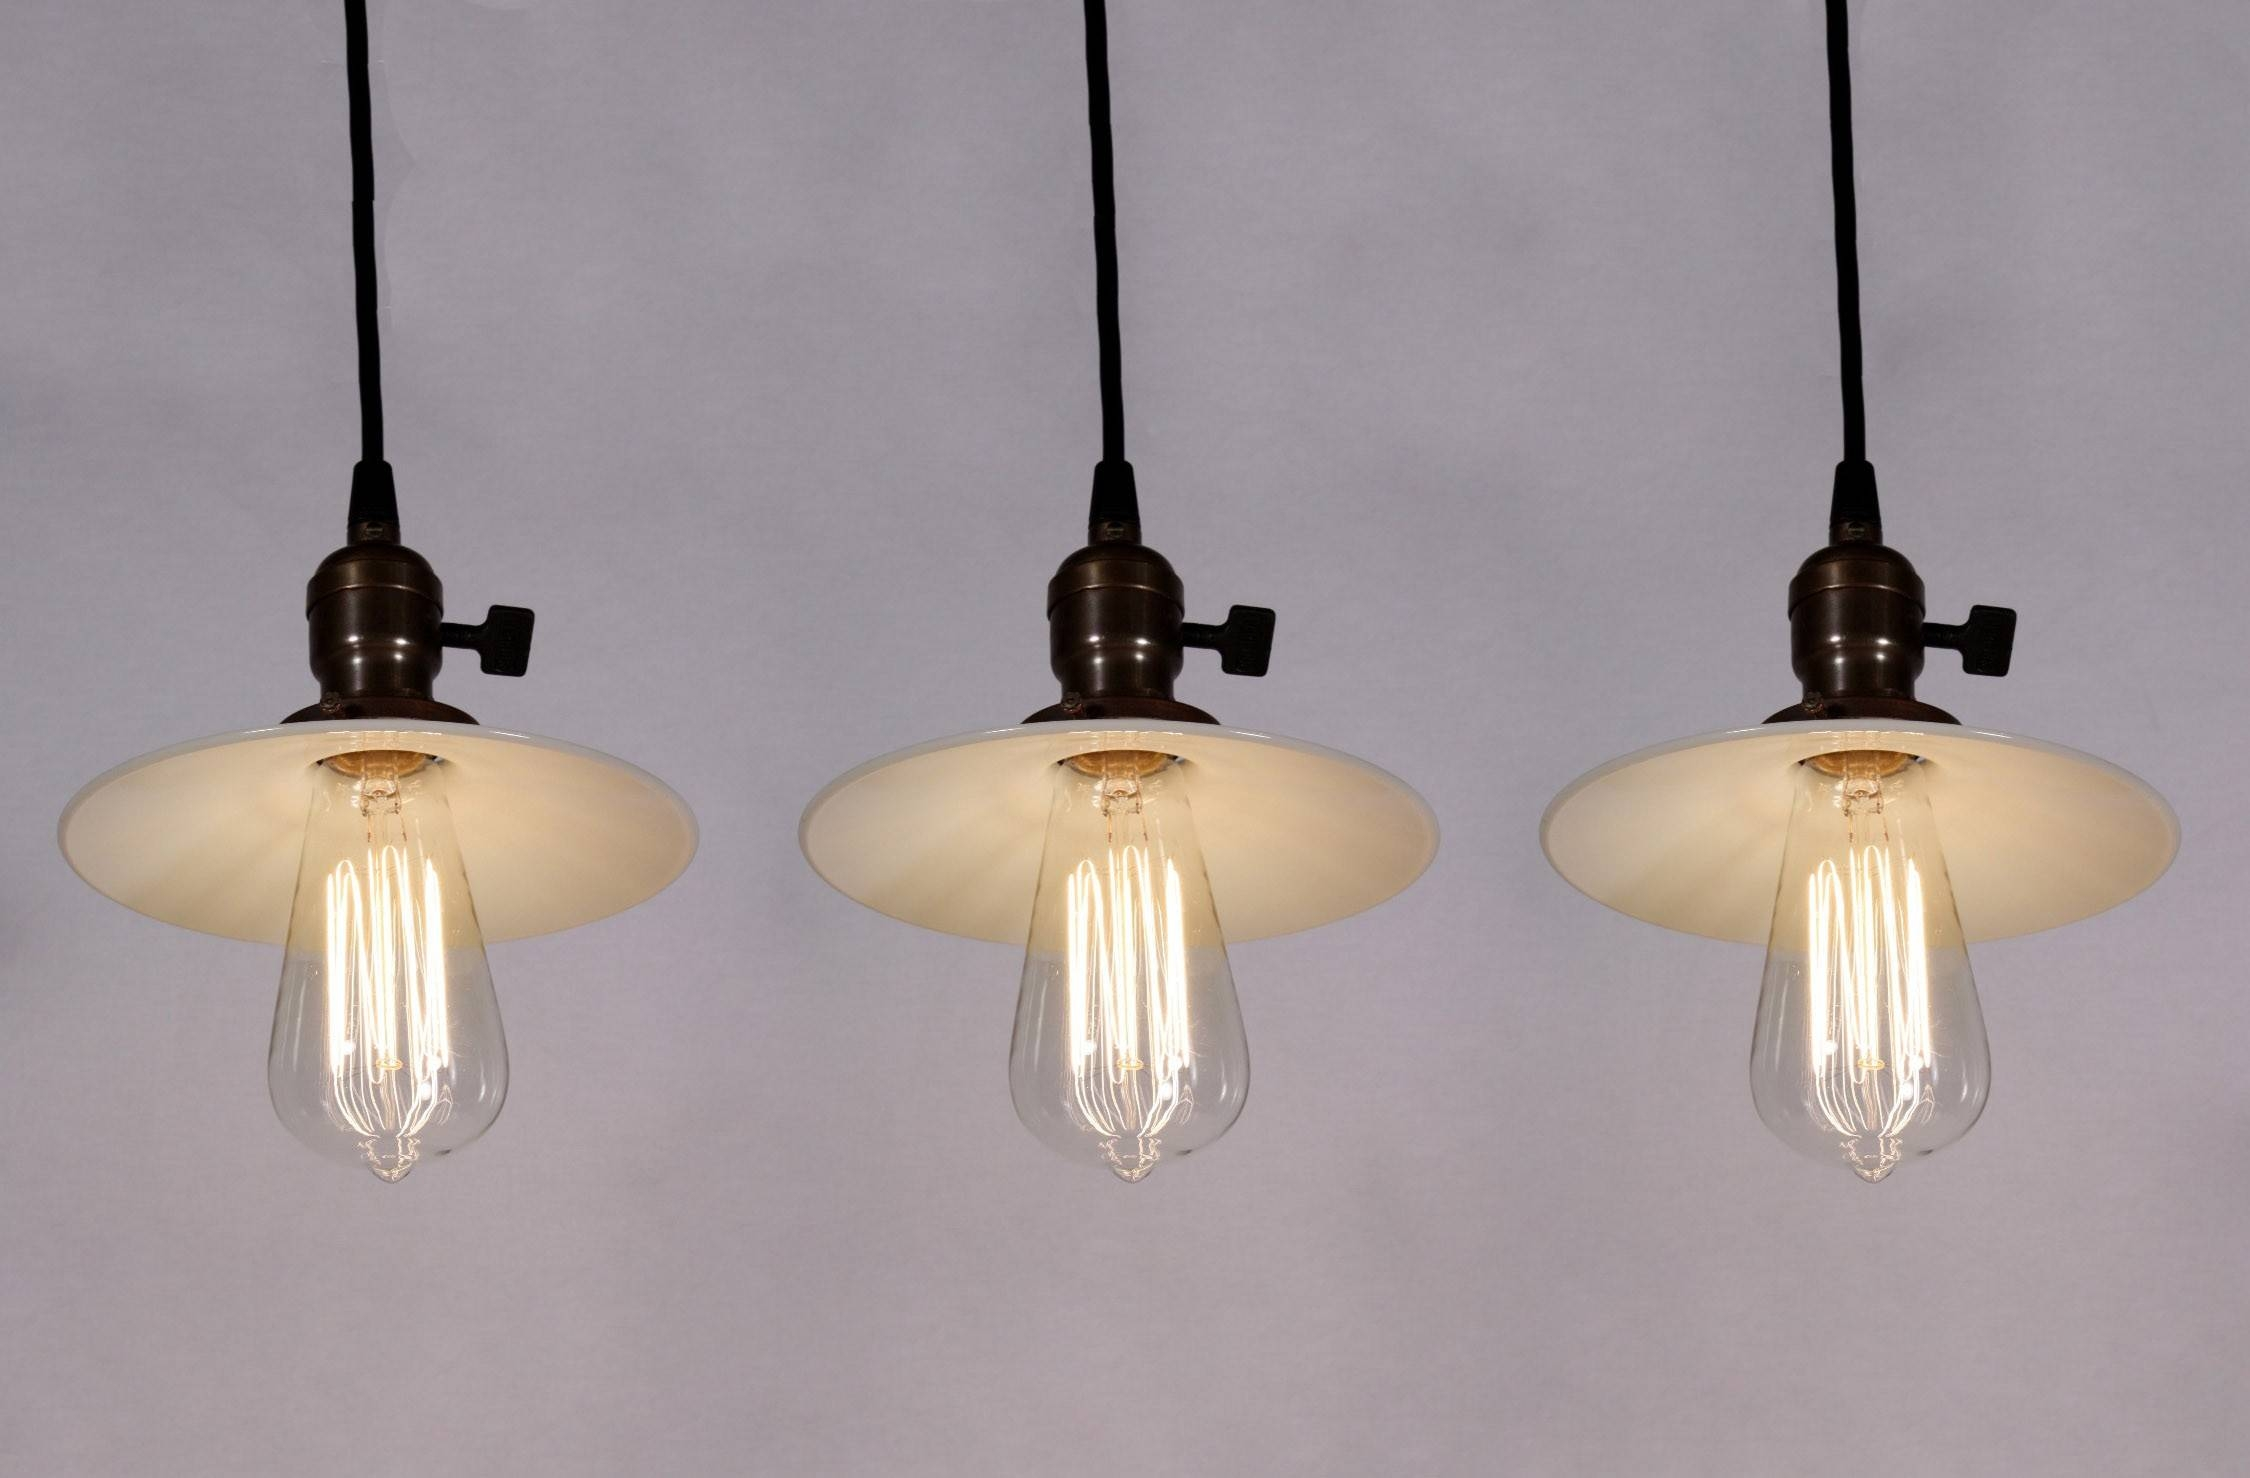 Set Of Three Matching Antique Industrial Pendant Lights With Milk with Milk Glass Pendant Light Fixtures (Image 12 of 15)